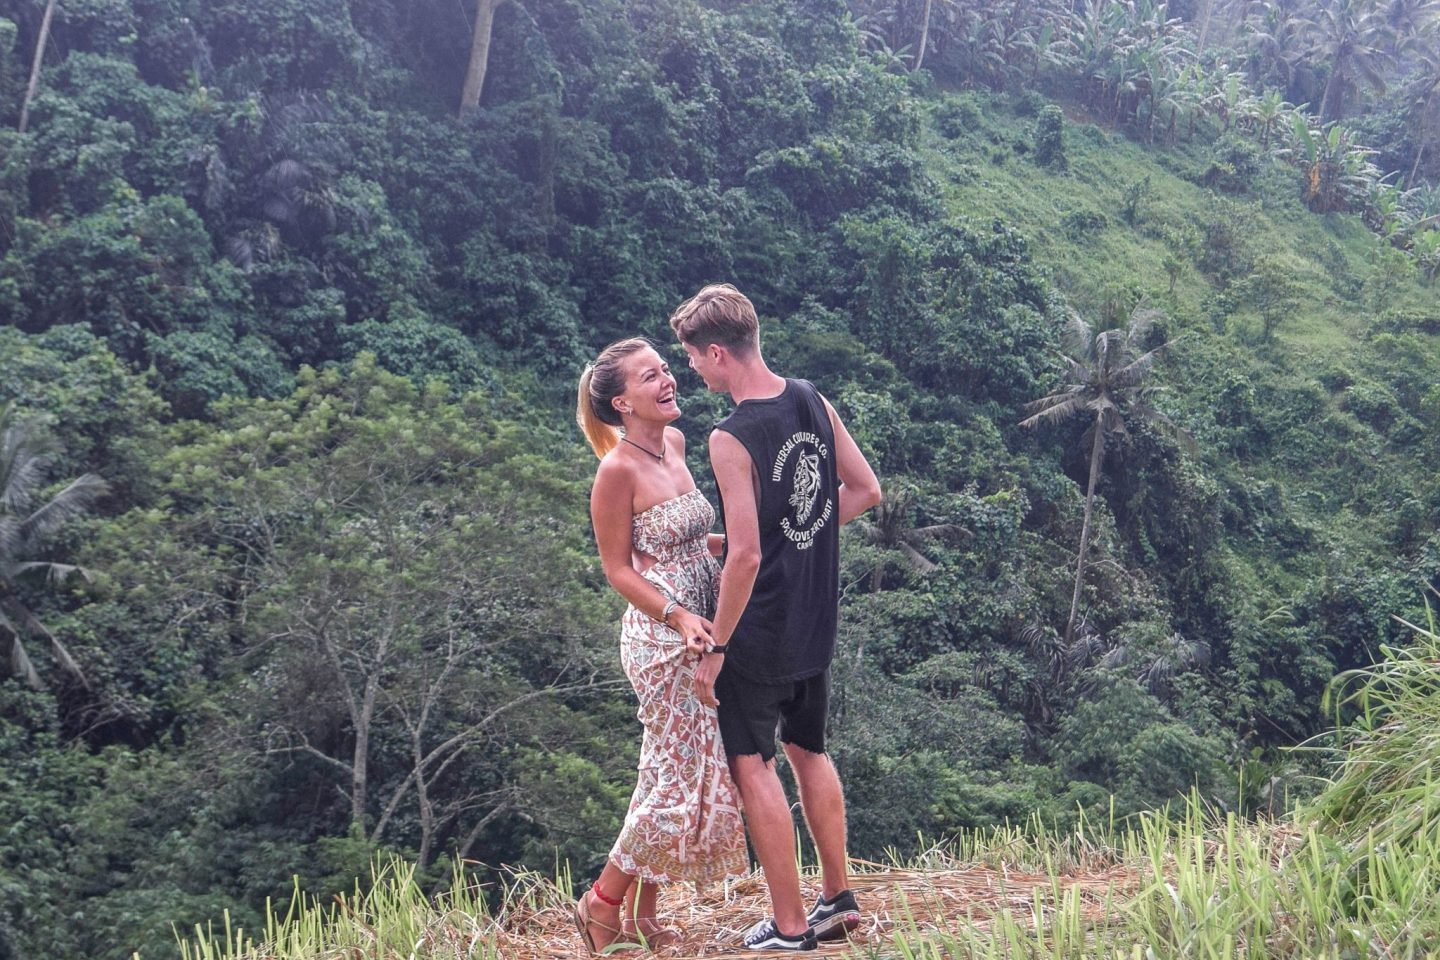 Wanderers & Warriors - Charlie & Lauren UK Travel Couple - Campuhan Ridge Walk Ubud - A Free & Easy Trek - Campuhan Ridge Walk Price - Things To Do In Ubud - Sunset at Campuhan Ridge Walk